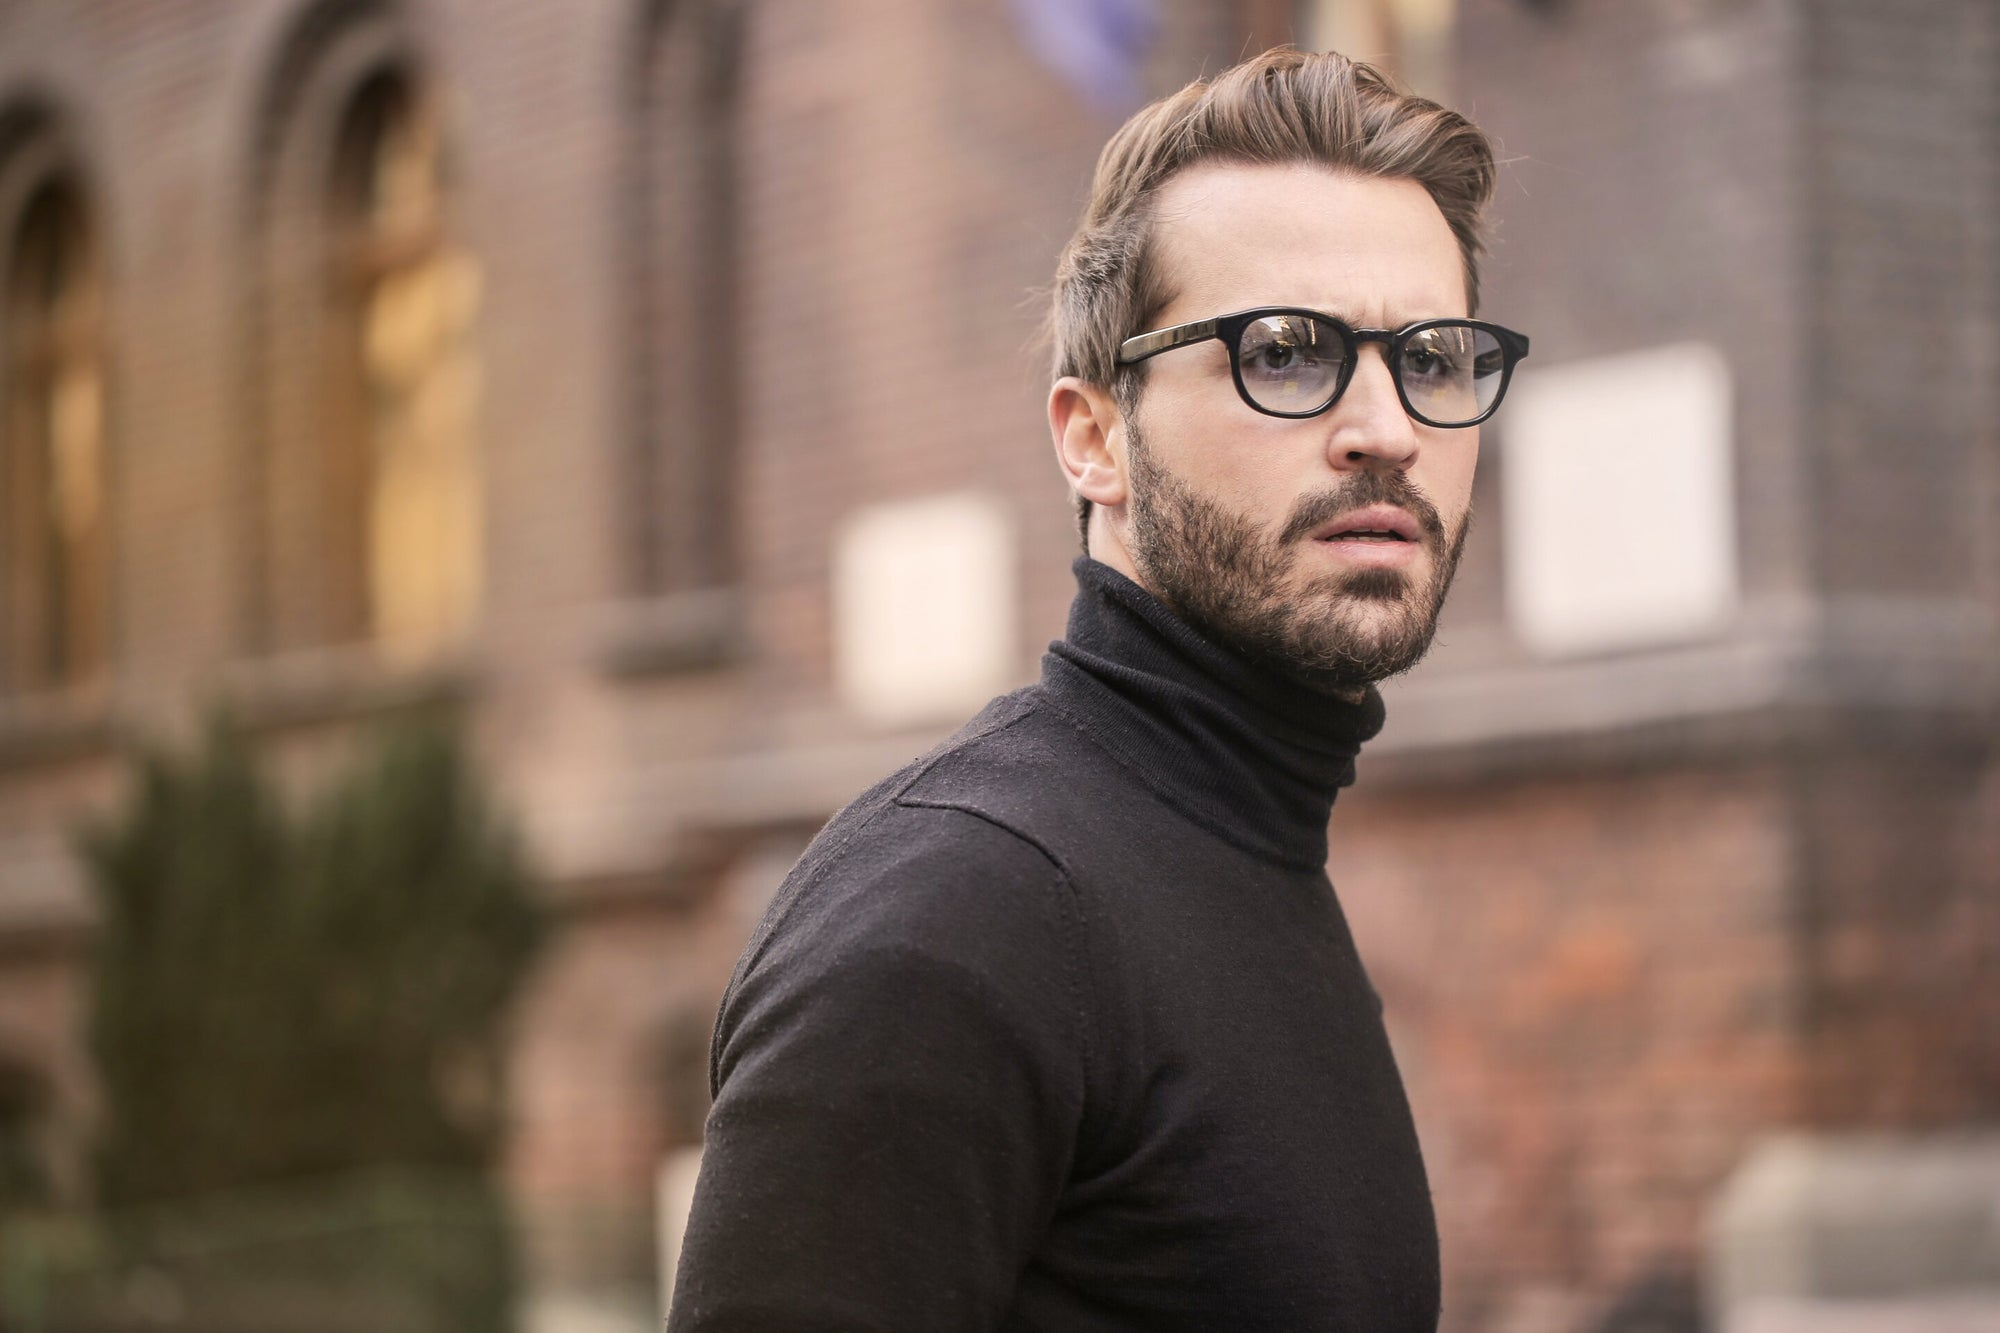 The Proper Ways to Prepare Your Beard for the Fall